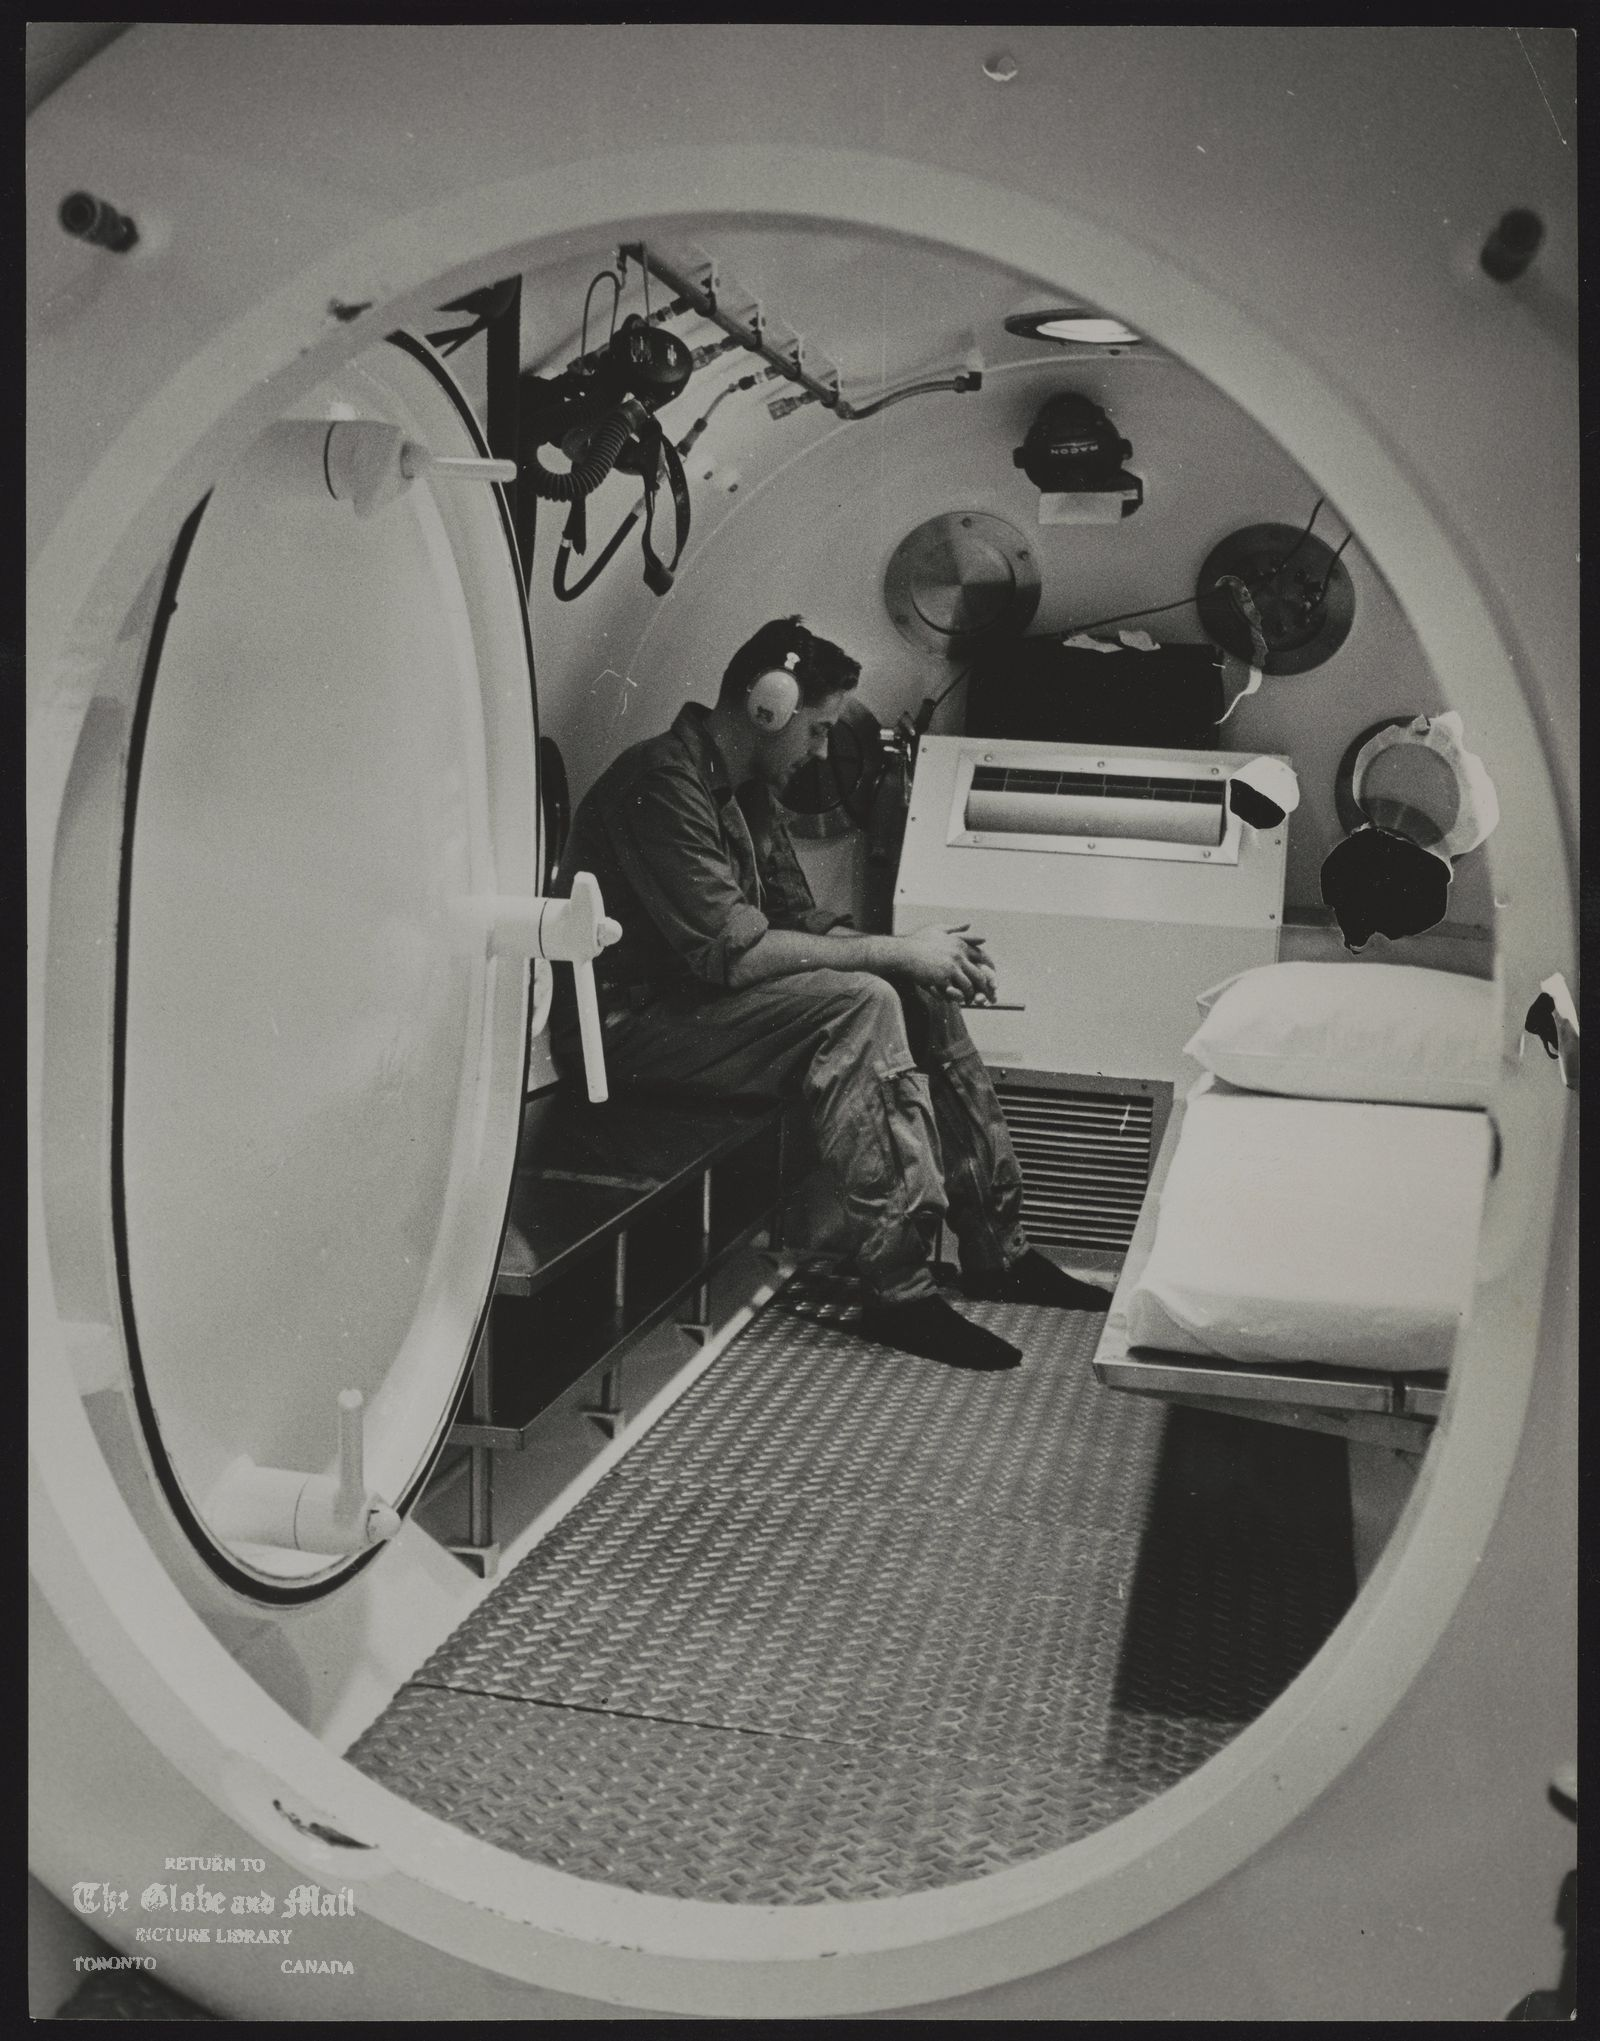 DECOMPRESSION CHAMBER Wesley Neihring, Royal Canadian Navy diver, demonstrates decompression chamber, 18 feet long, only one in Ontario. It was put into operation yesterday at Toronto General Hospital for divers or tunnel workers, for research. $50,000 chamber to treat bends.